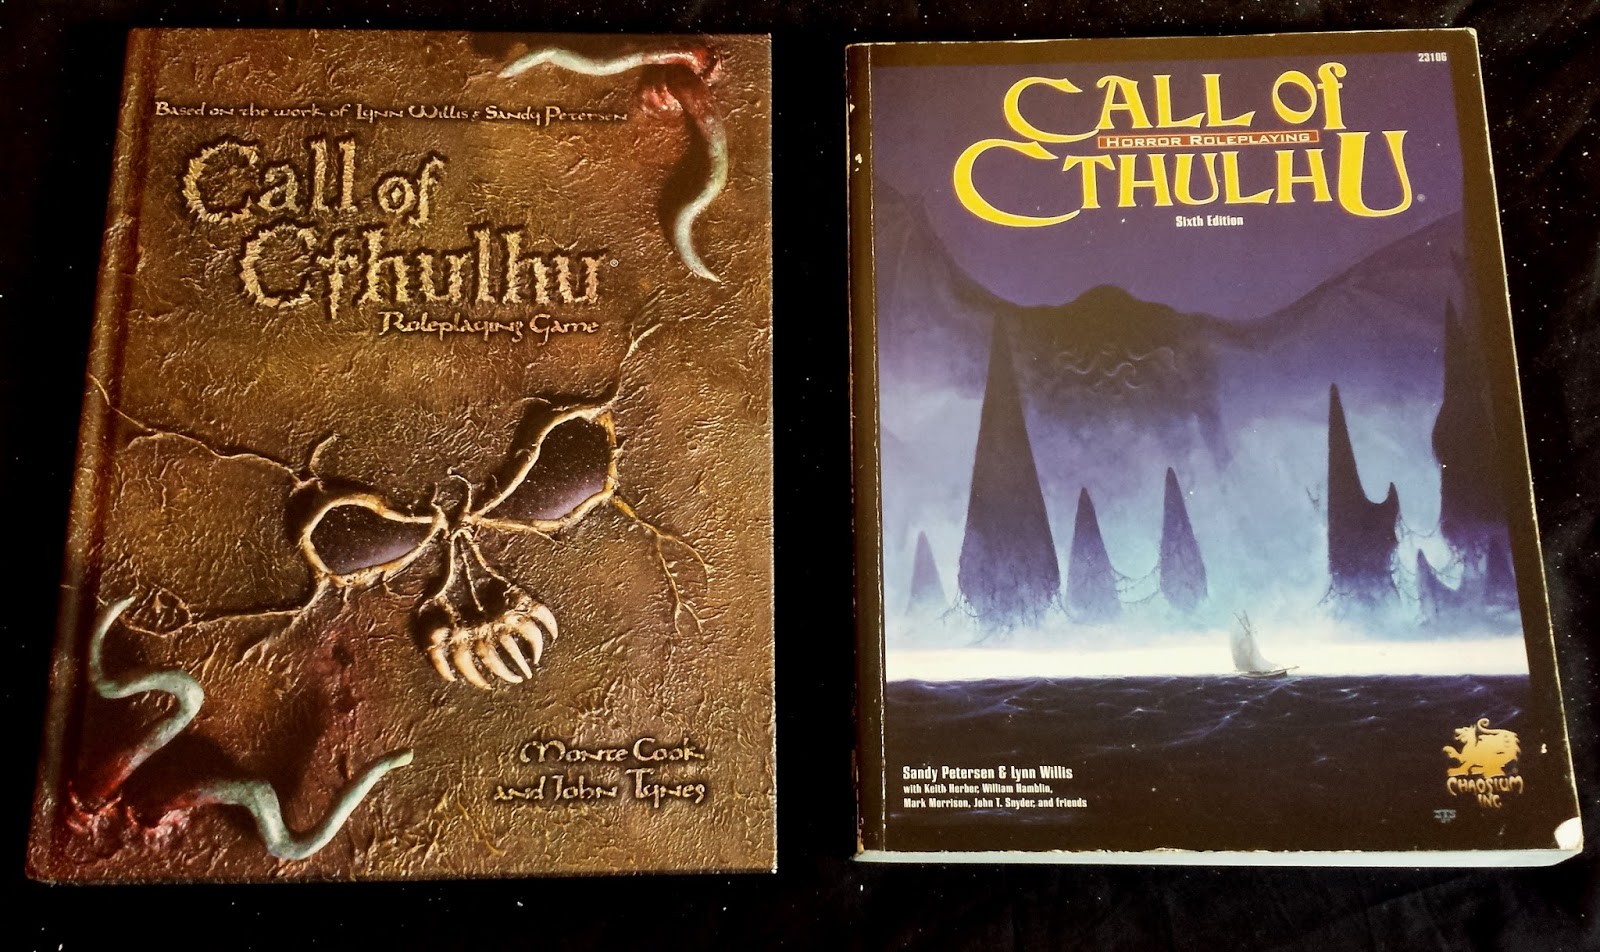 Call of cthulhu 7th edition pdf download